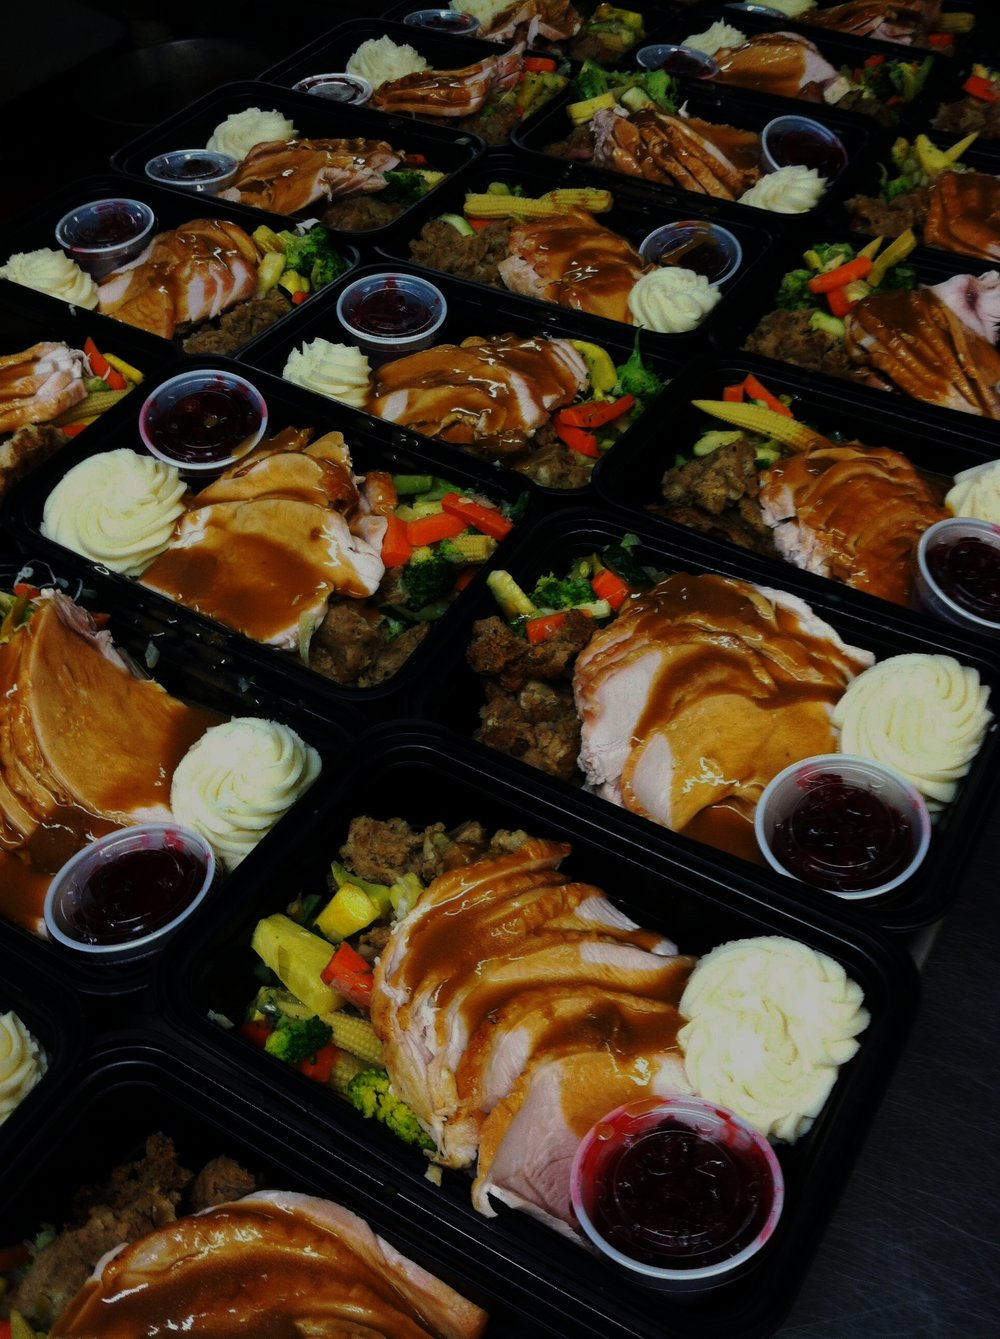 Thanksgiving Take Out - Place your order today for complete individual meals or family-style side dishes!